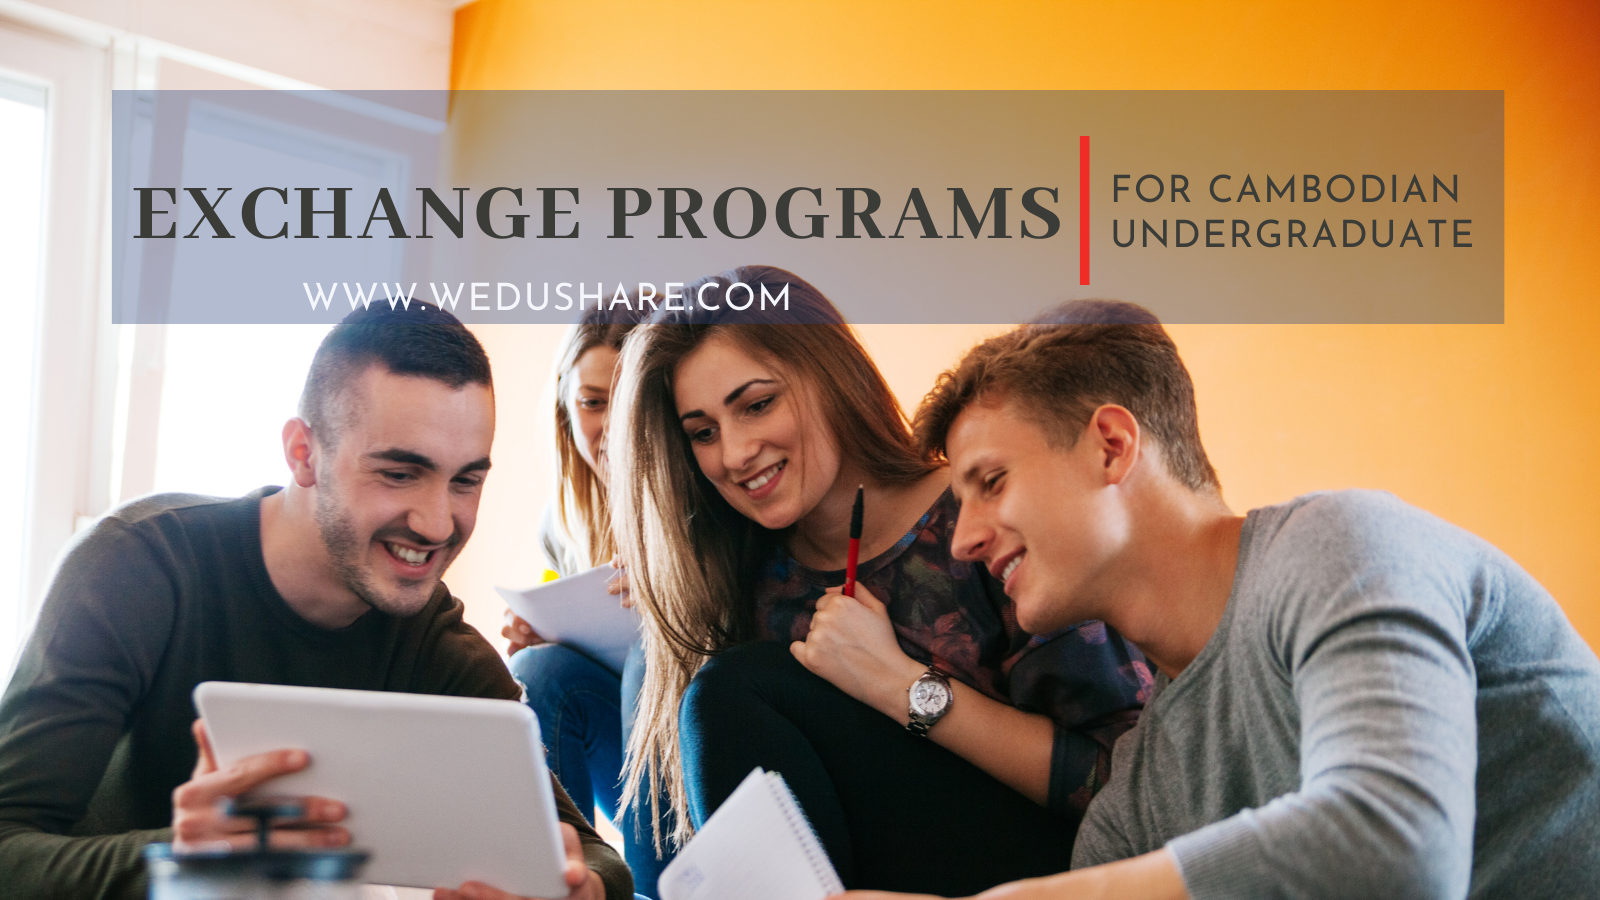 Exchange Program for Cambodian Undergraduate